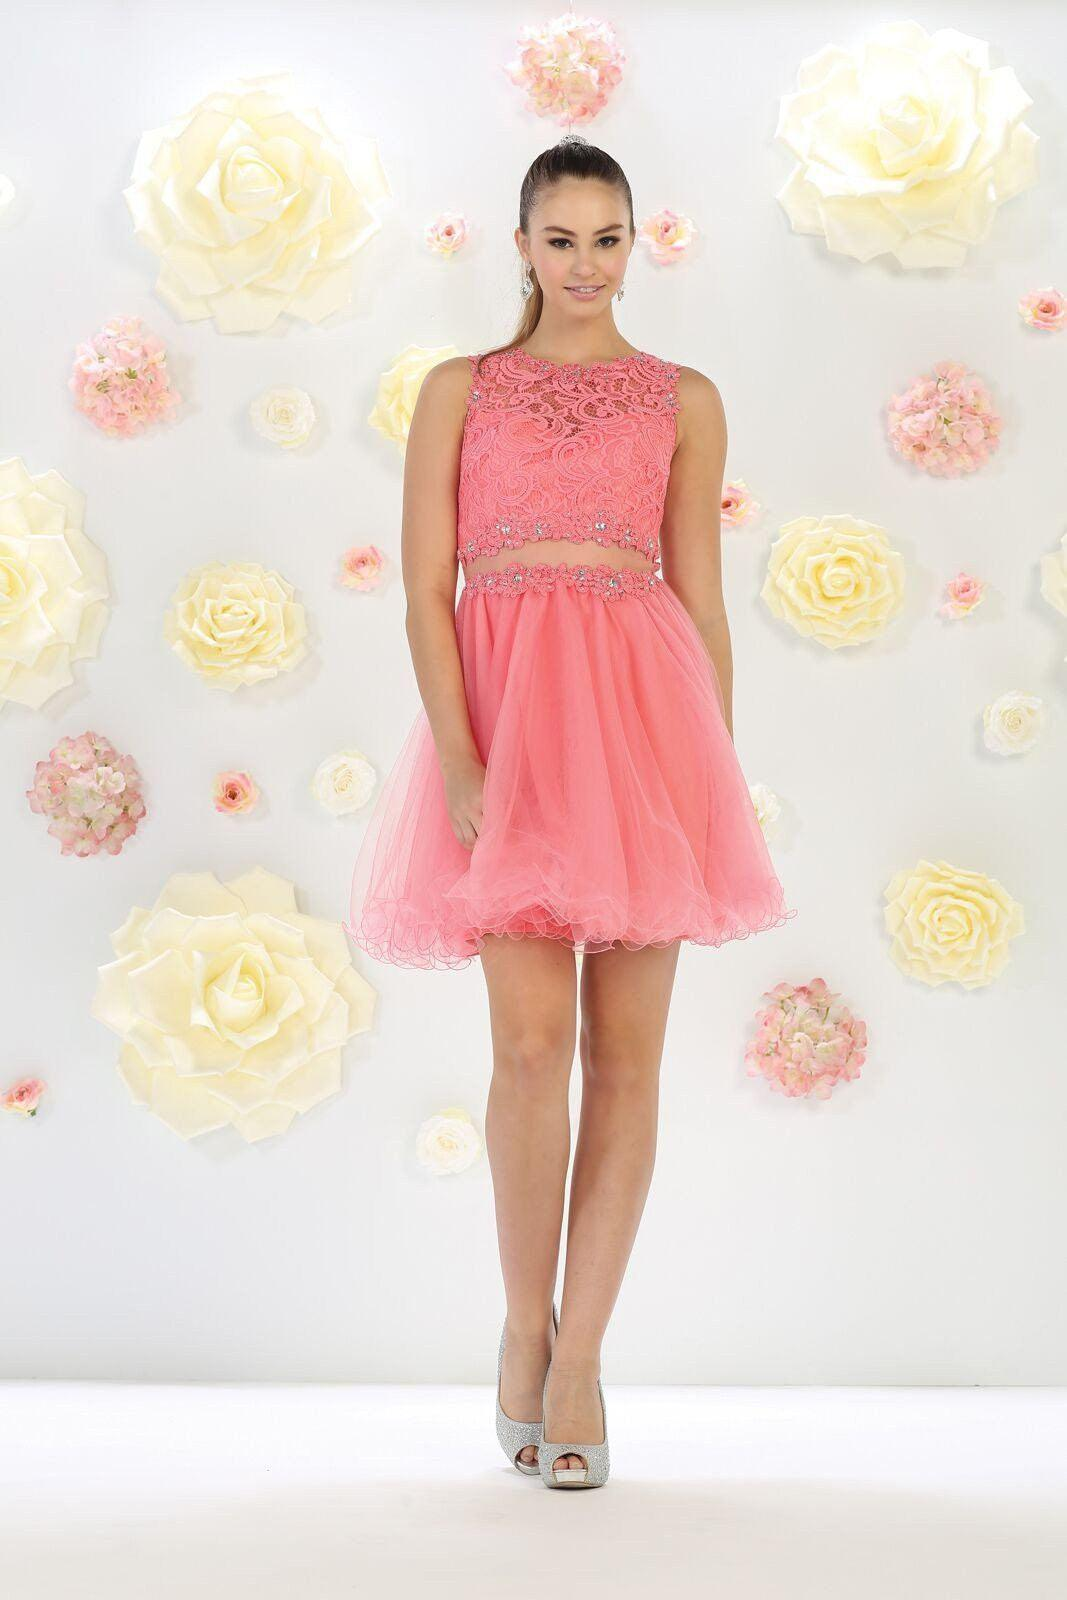 e84933f3fa7 ... Short Prom Formal Homecoming Dress - The Dress Outlet Coral May Queen  ...